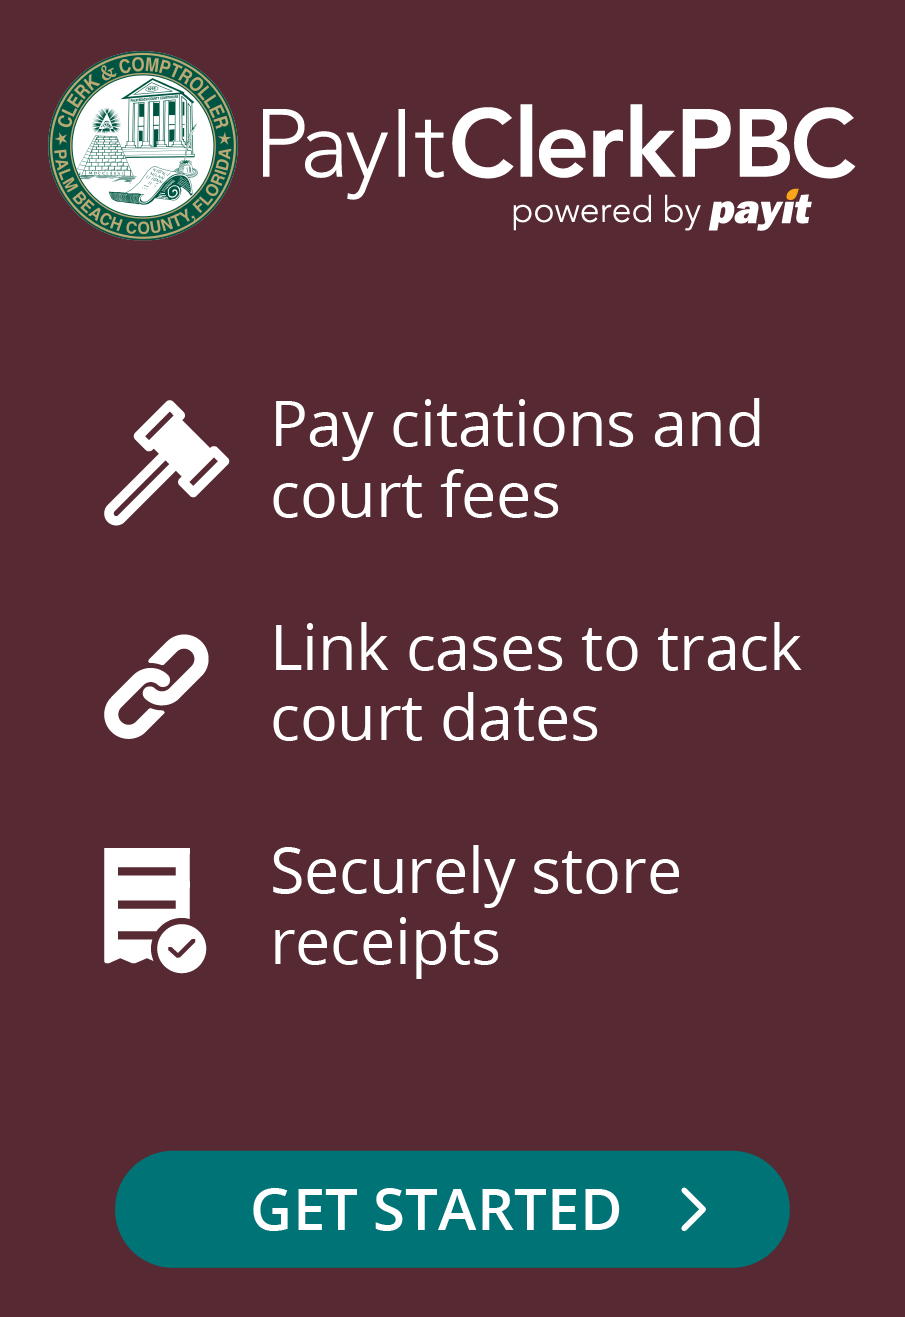 Pay citations and court fees - get started